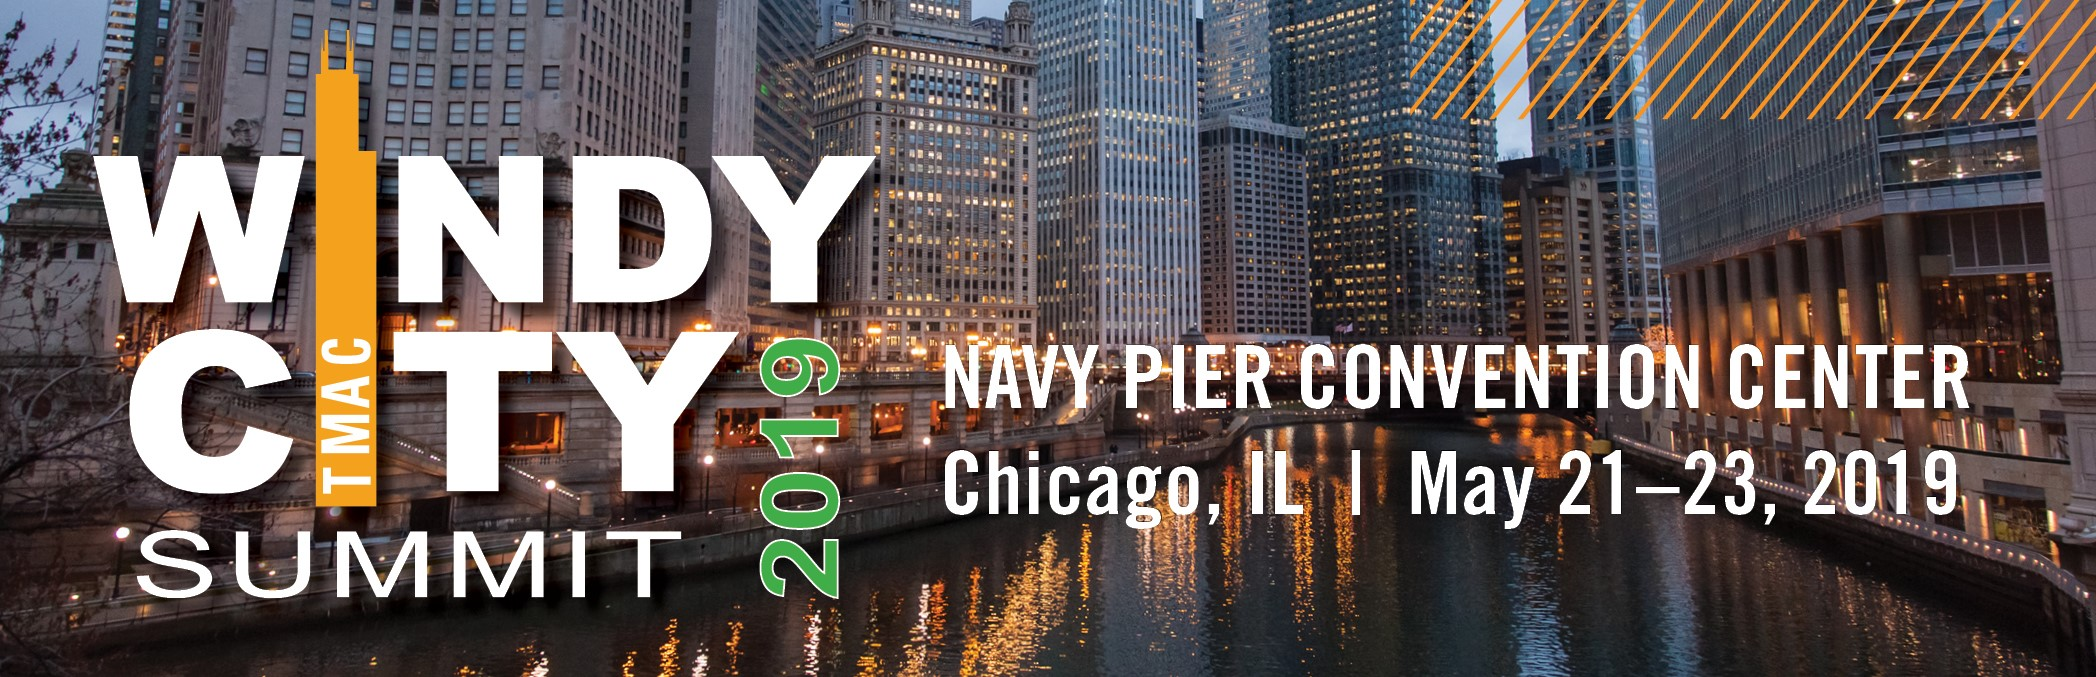 Windy City Summit Network with over 1,200 finance professionals